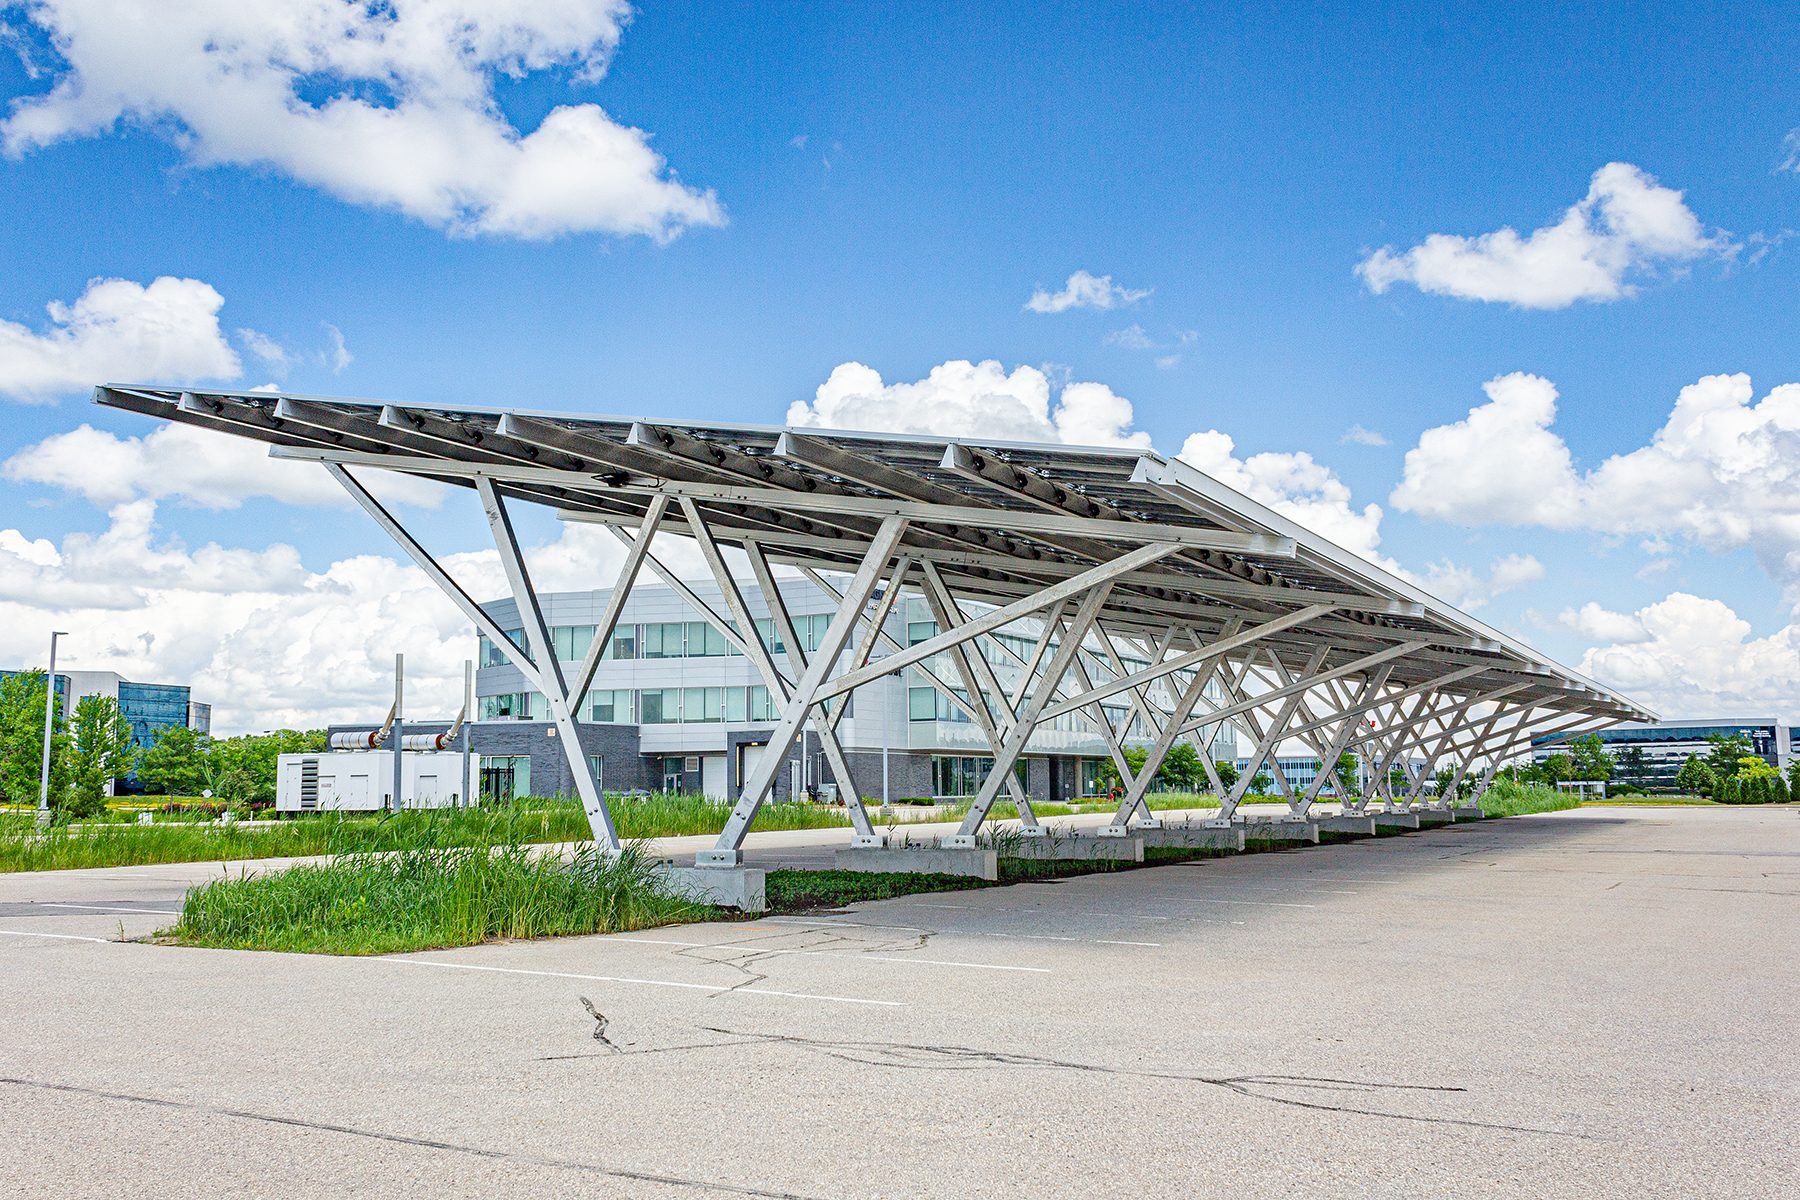 Solar Carport at 375 Hagey Blvd, WaterlooONtario. Carport is photographed against a fair weather sky with sun and puffy white closu